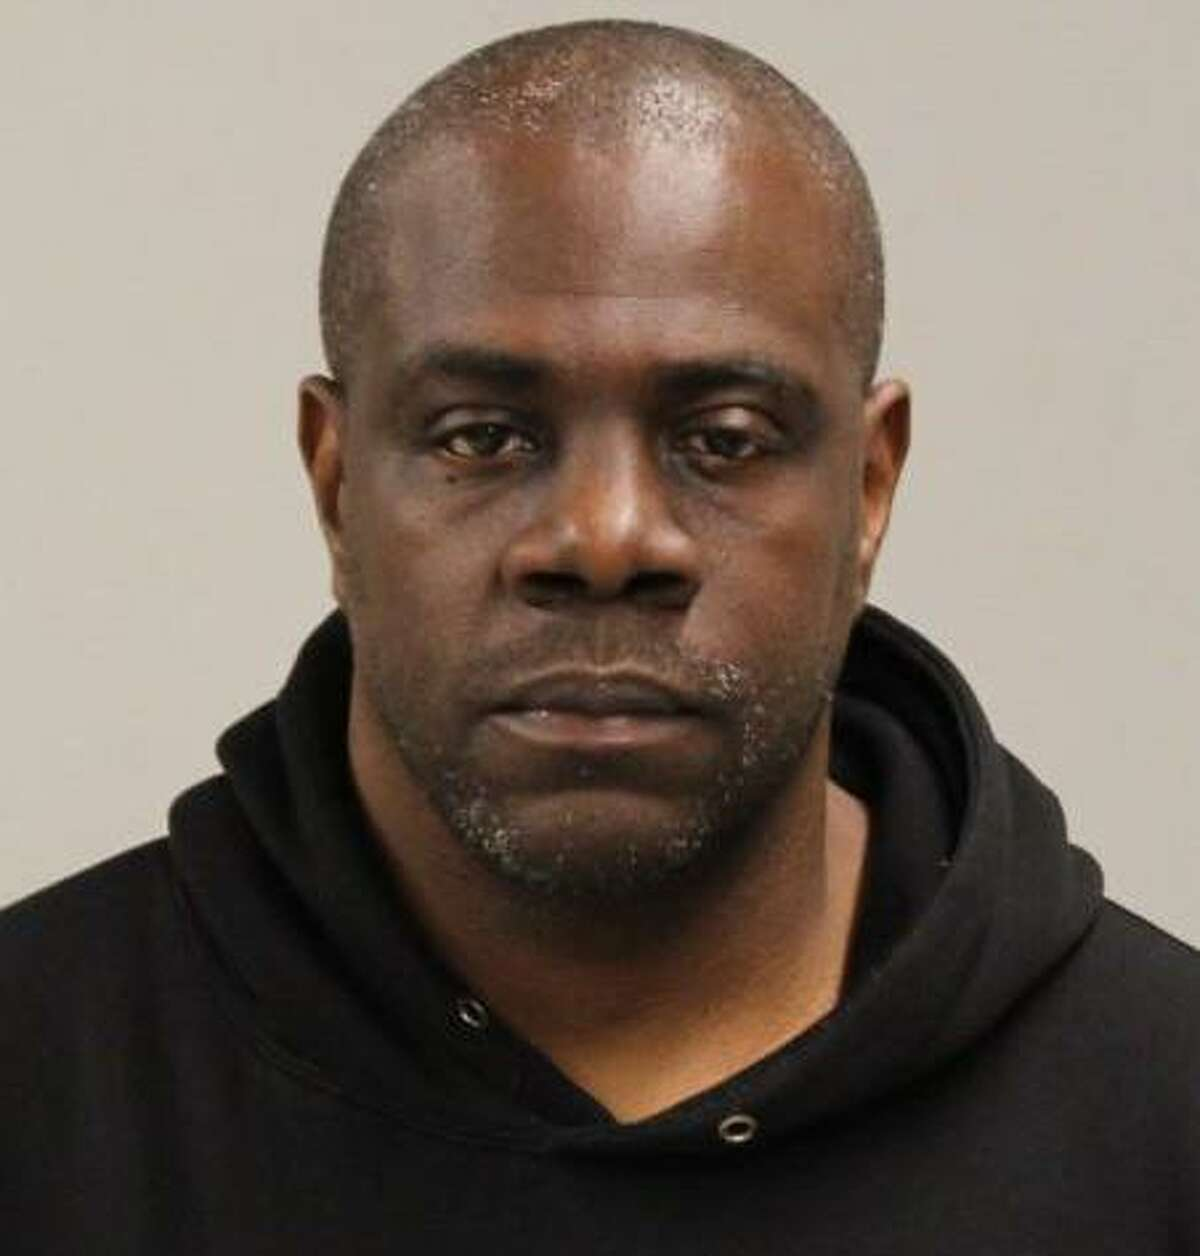 New York City resident Ajamu Obataiye was arrested in Westport on April 13 on charges of cruelty to animals, illegal dumping, and breach of peace.